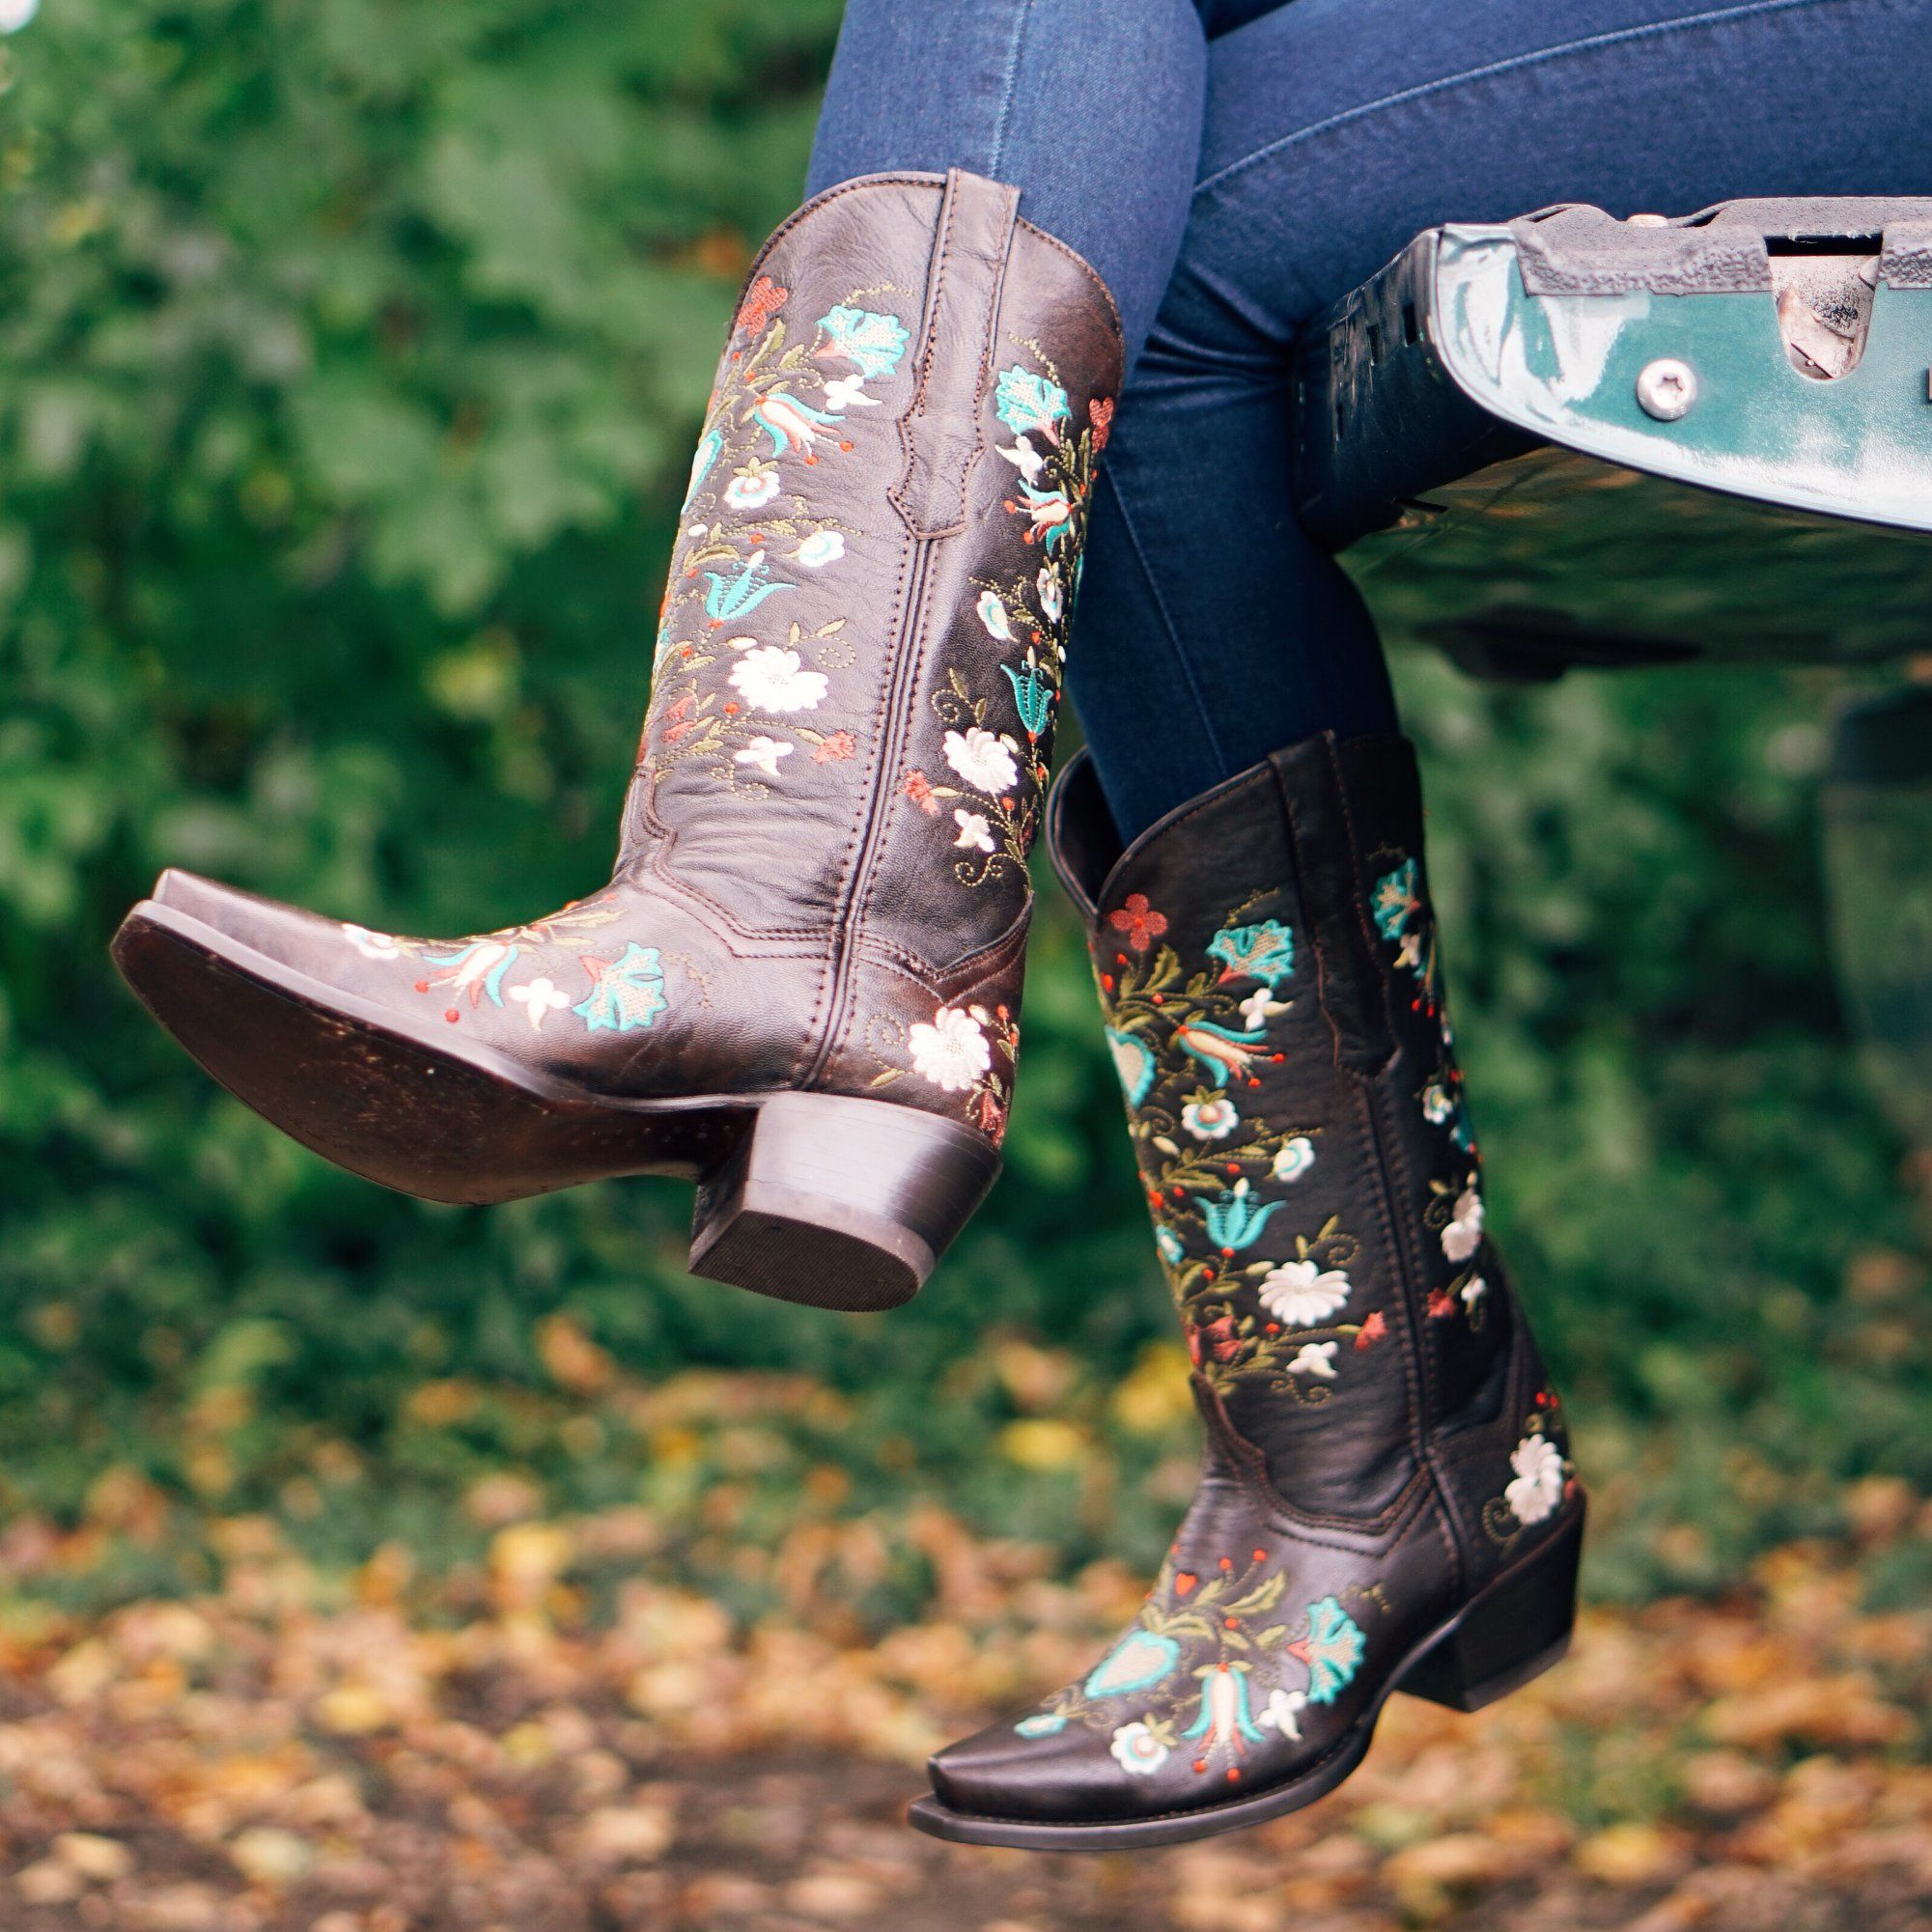 Wildflower Boots Floral Embroidered Cowgirl Boots M50030 Boots Womens Cowgirl Boots Cowgirl Boots